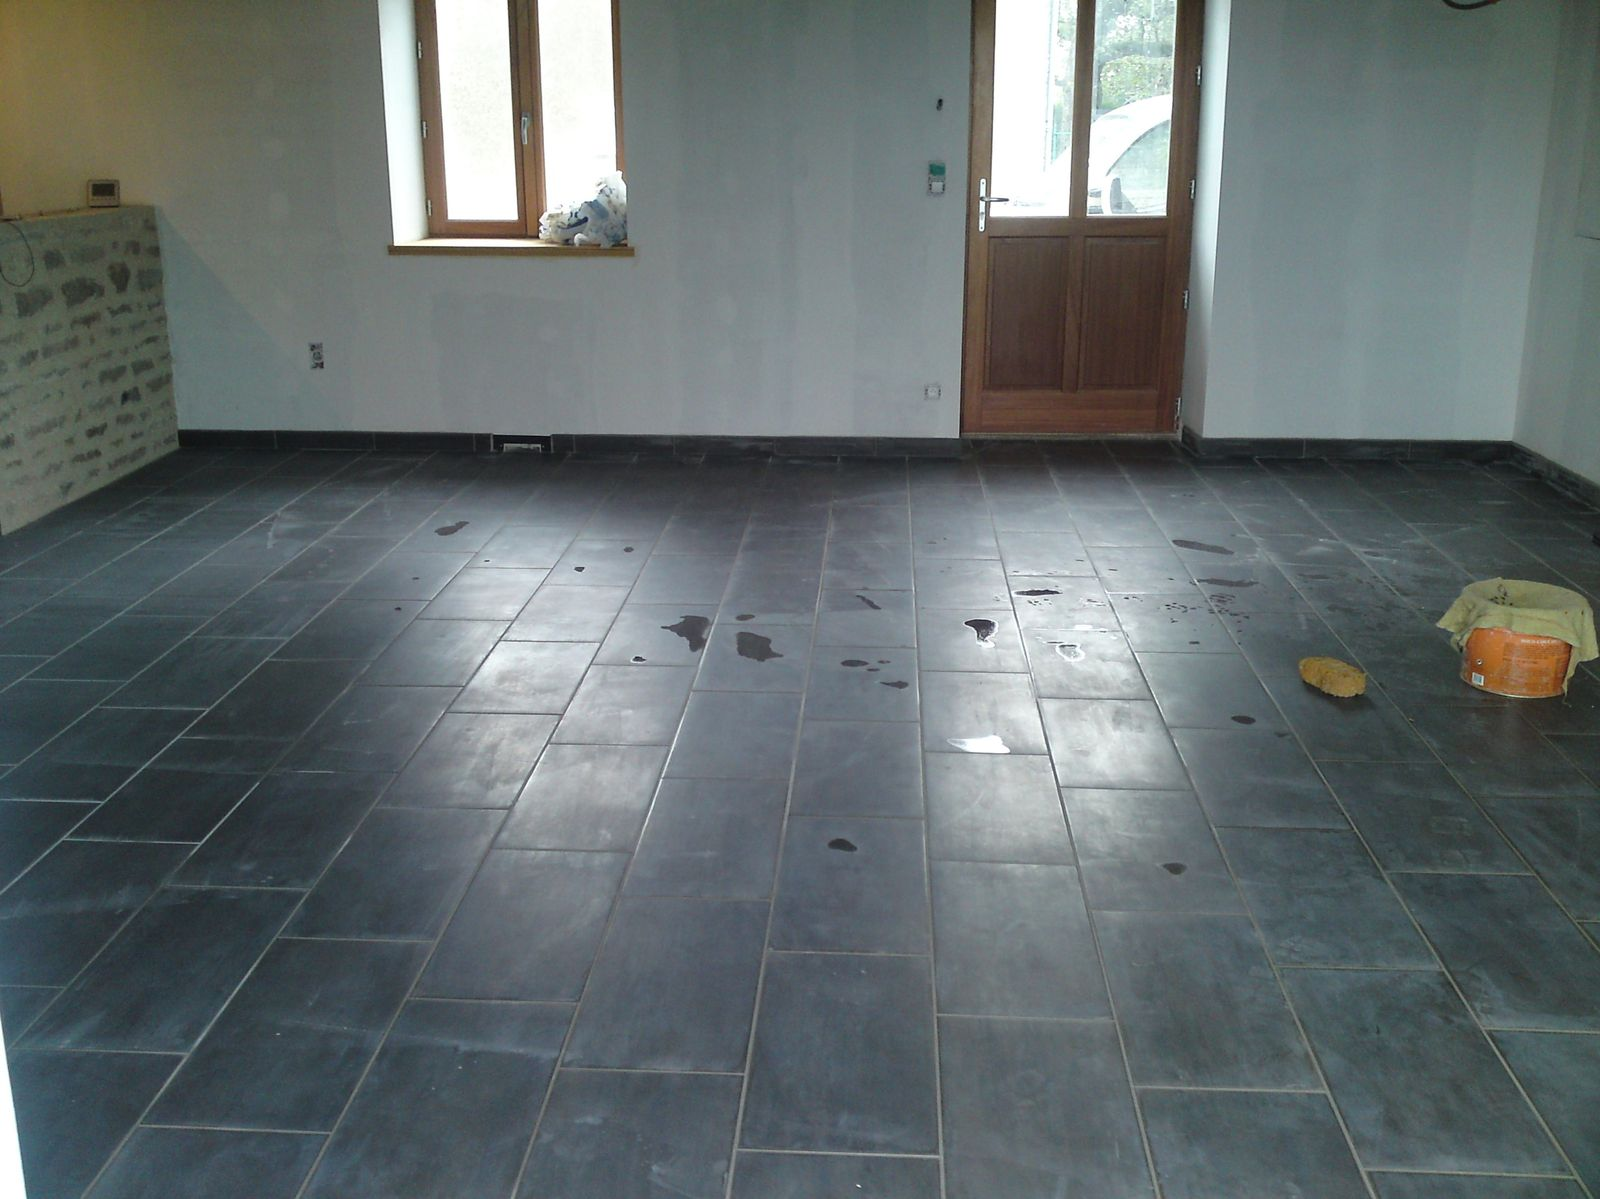 Joints de carrelage renovation d 39 une fermette en bourgogne - Joint de carrelage noirci ...